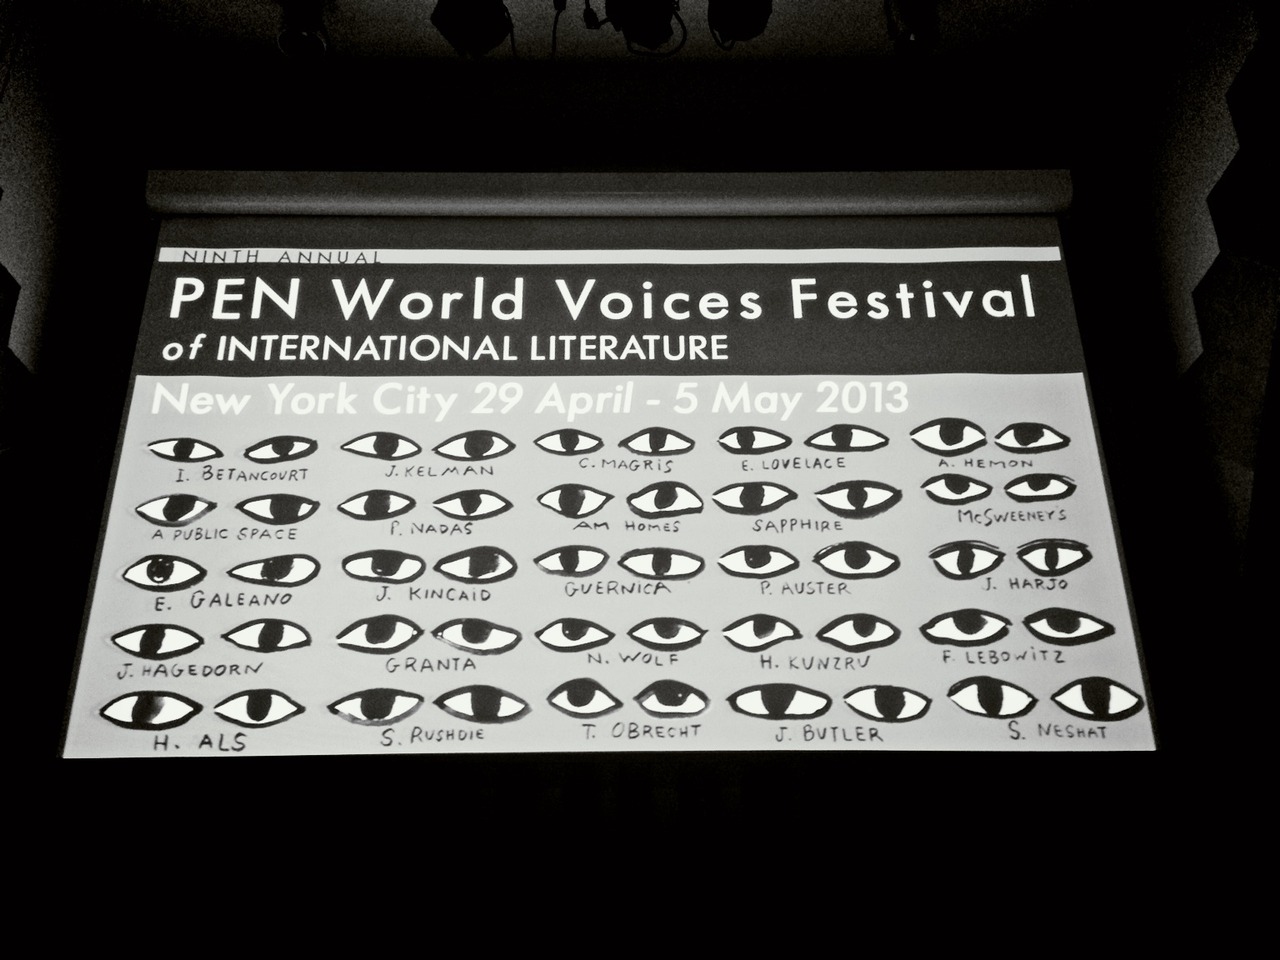 #showtime! Emceeing #penfest13. Some amazing writers in town at Cooper Union Great Hall – View on Path.